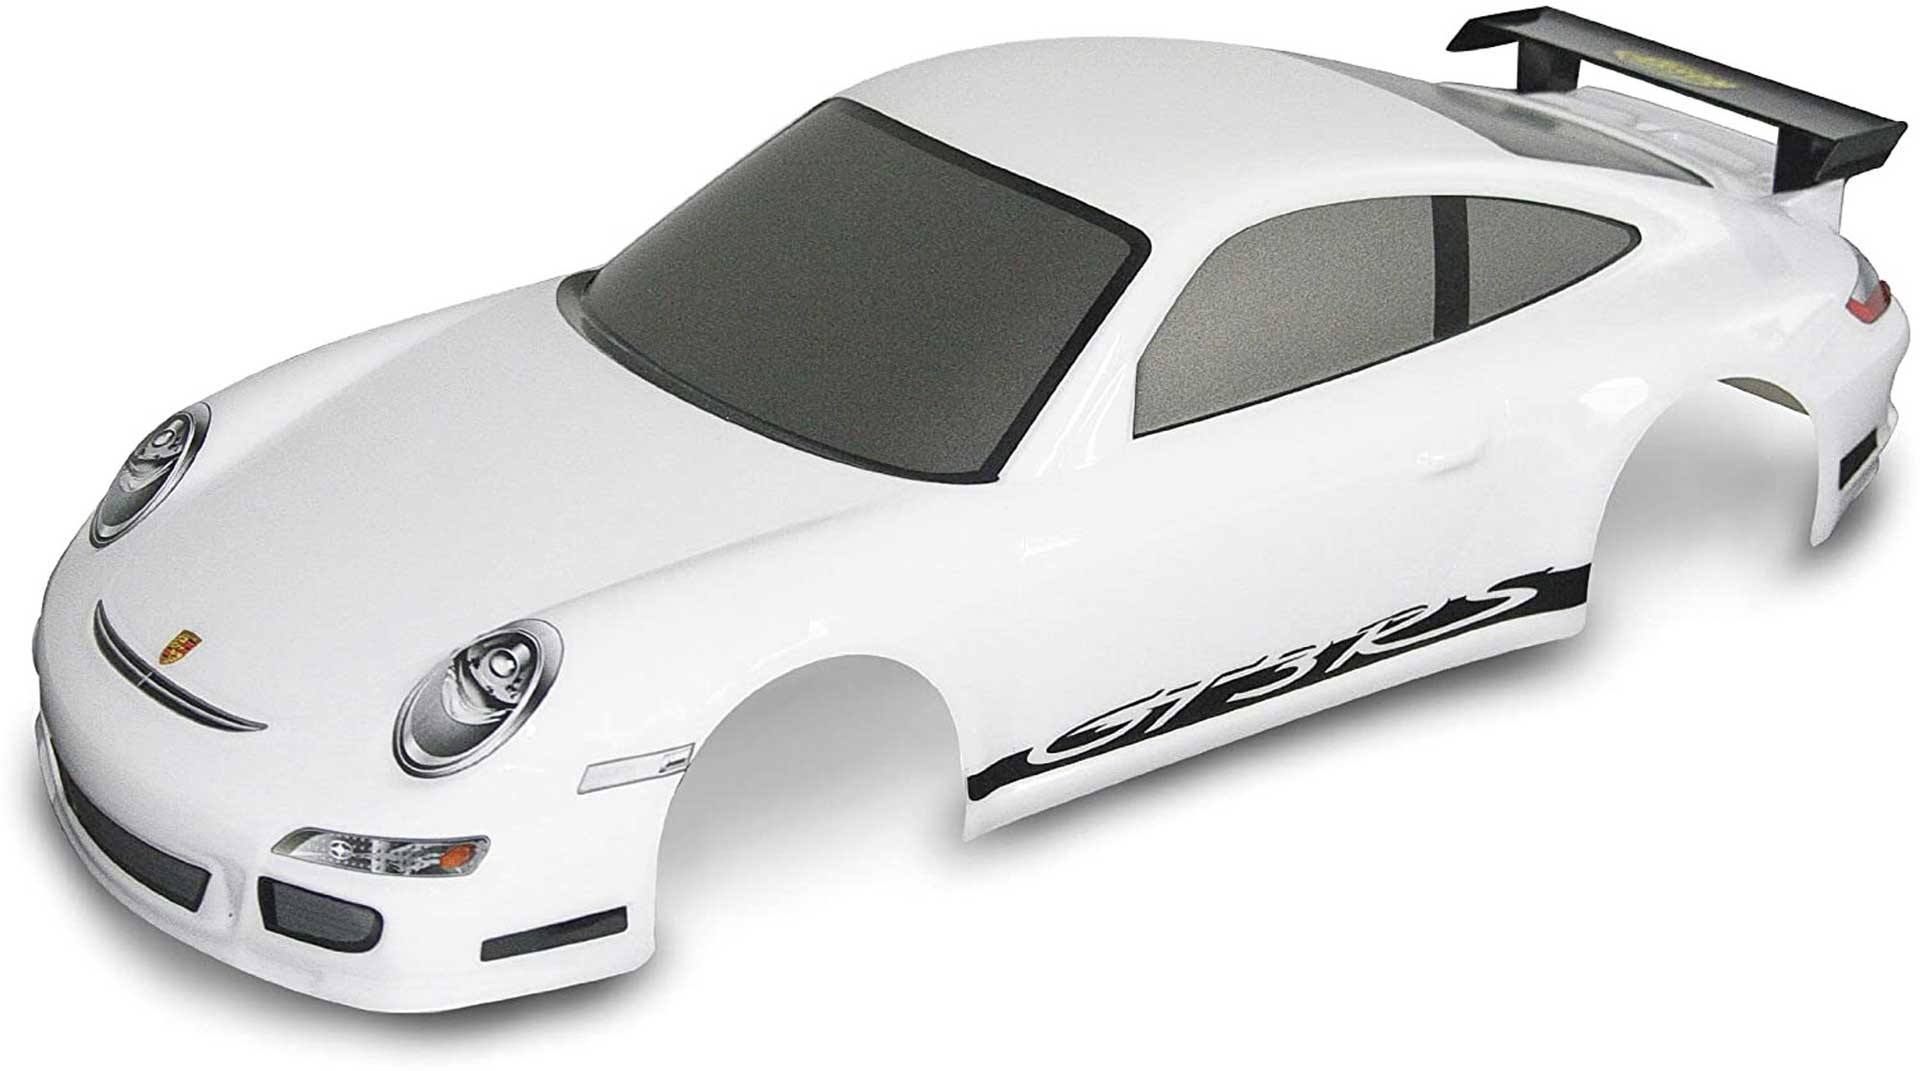 CARSON Body Porsche 911 GT3 1/10 white painted + decor